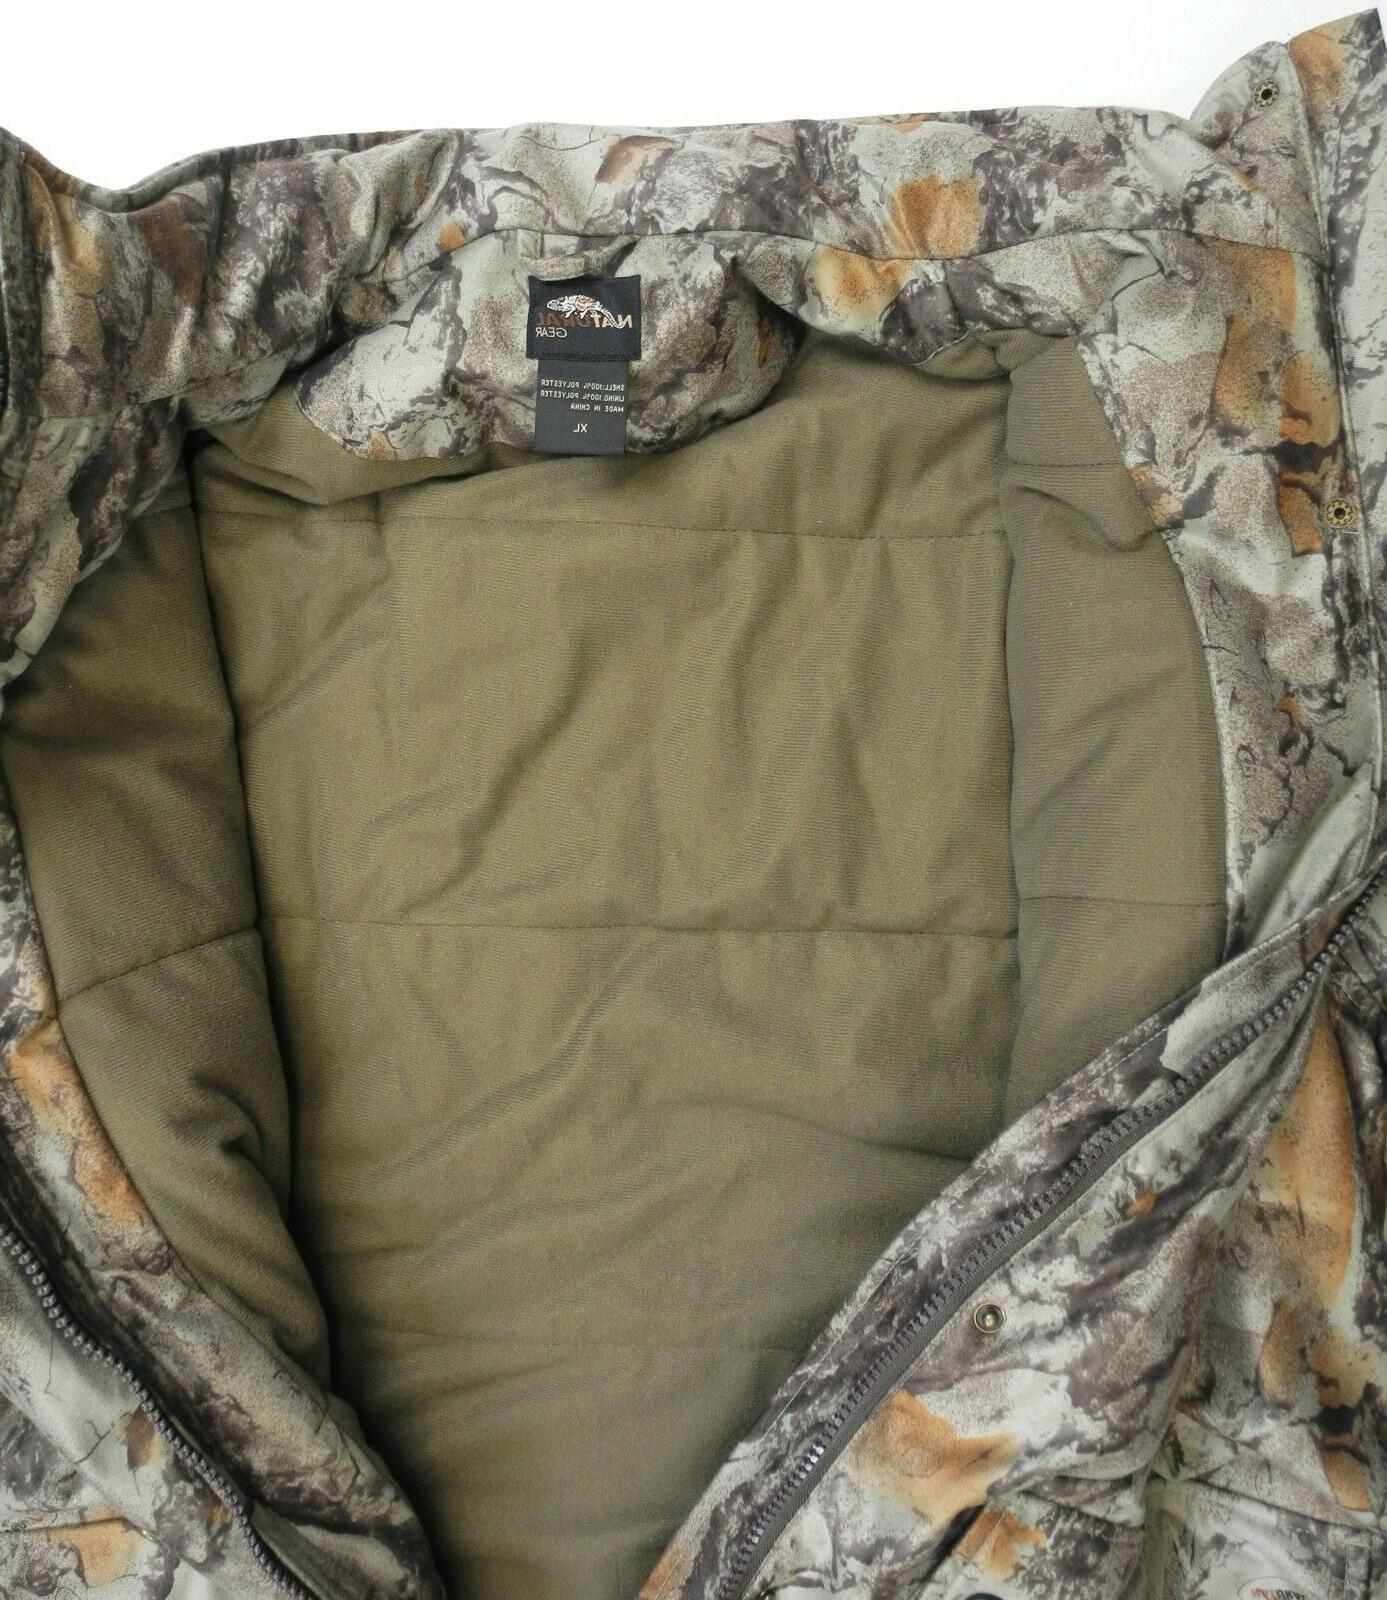 Natural Gear Insulated - XL - Jacket